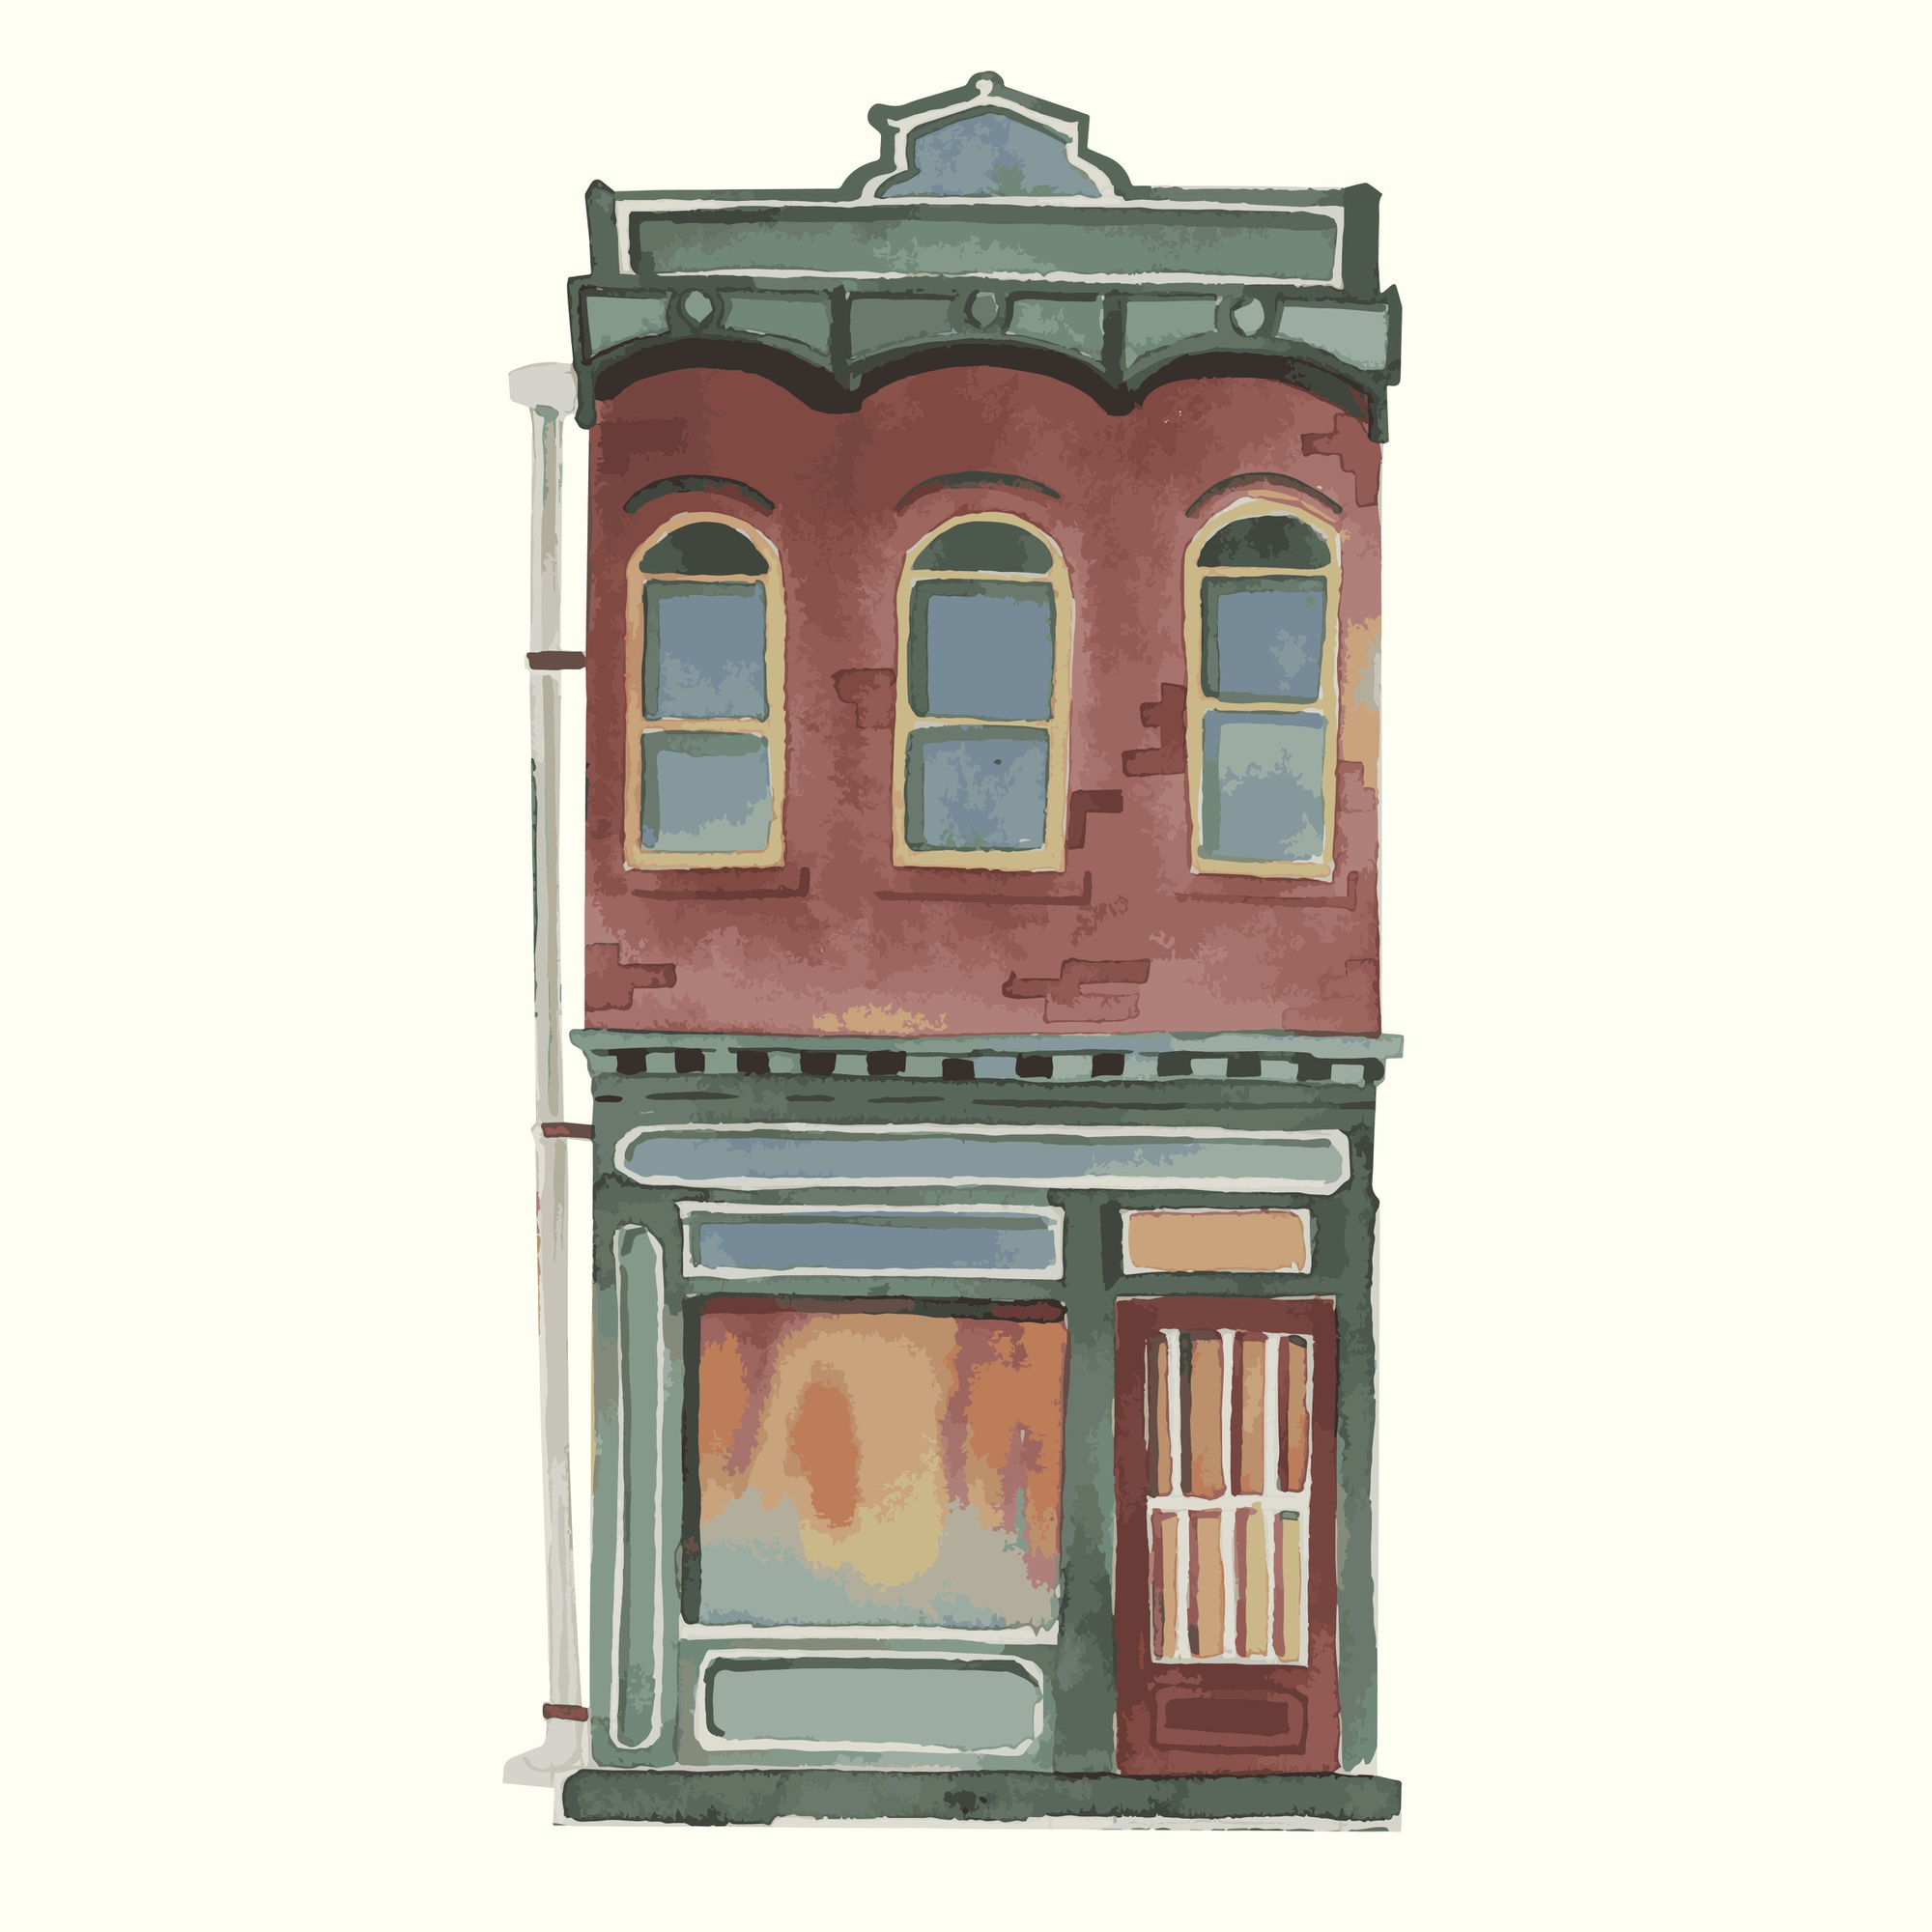 Illustration of a vintage European building exterior in water color